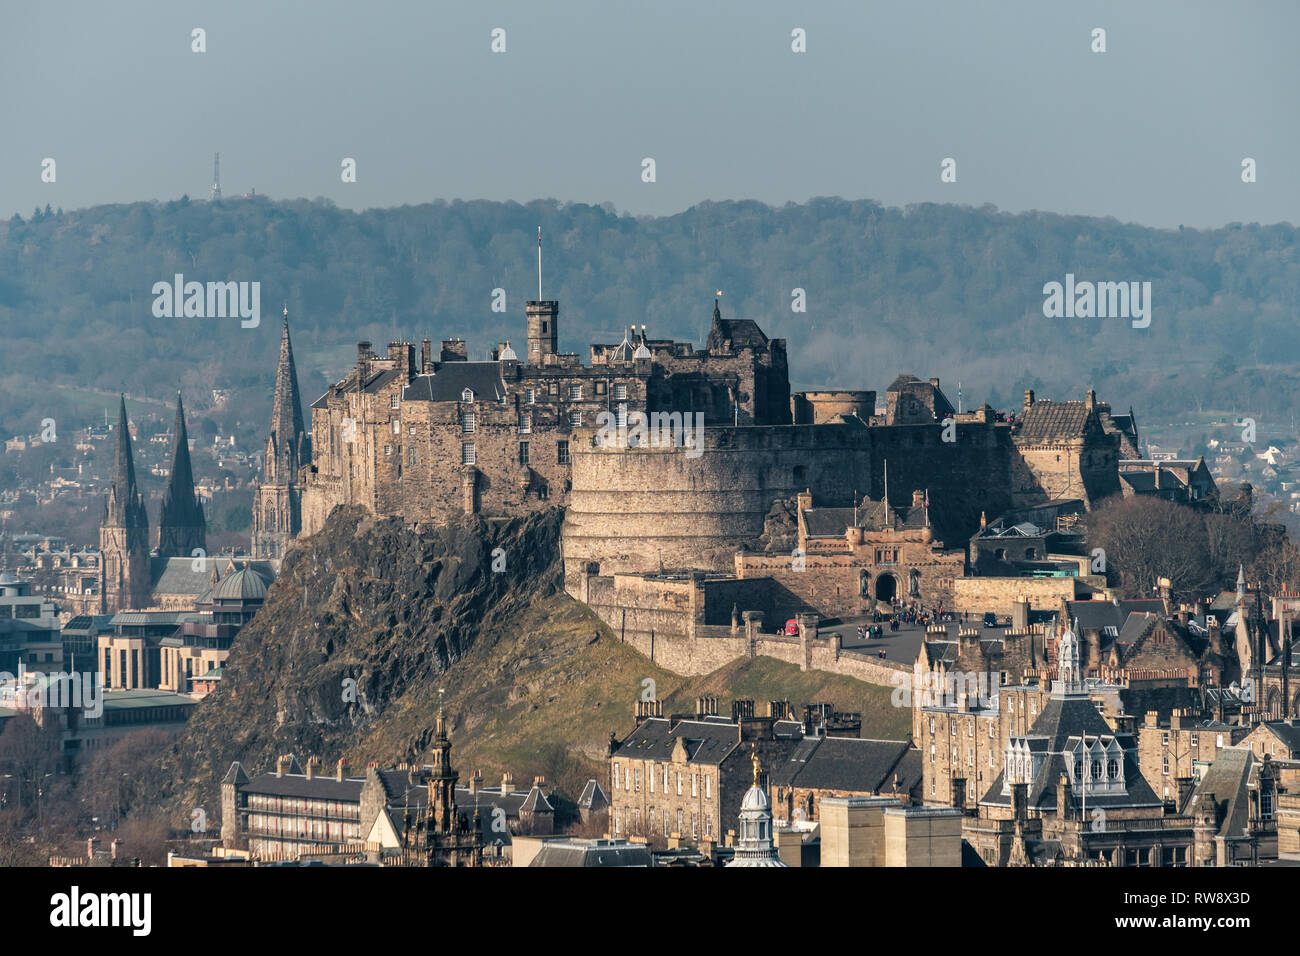 A scenic view of Edinburgh castle and cityscape from Salisbury Crags on a sunny day, Scotland Stock Photo